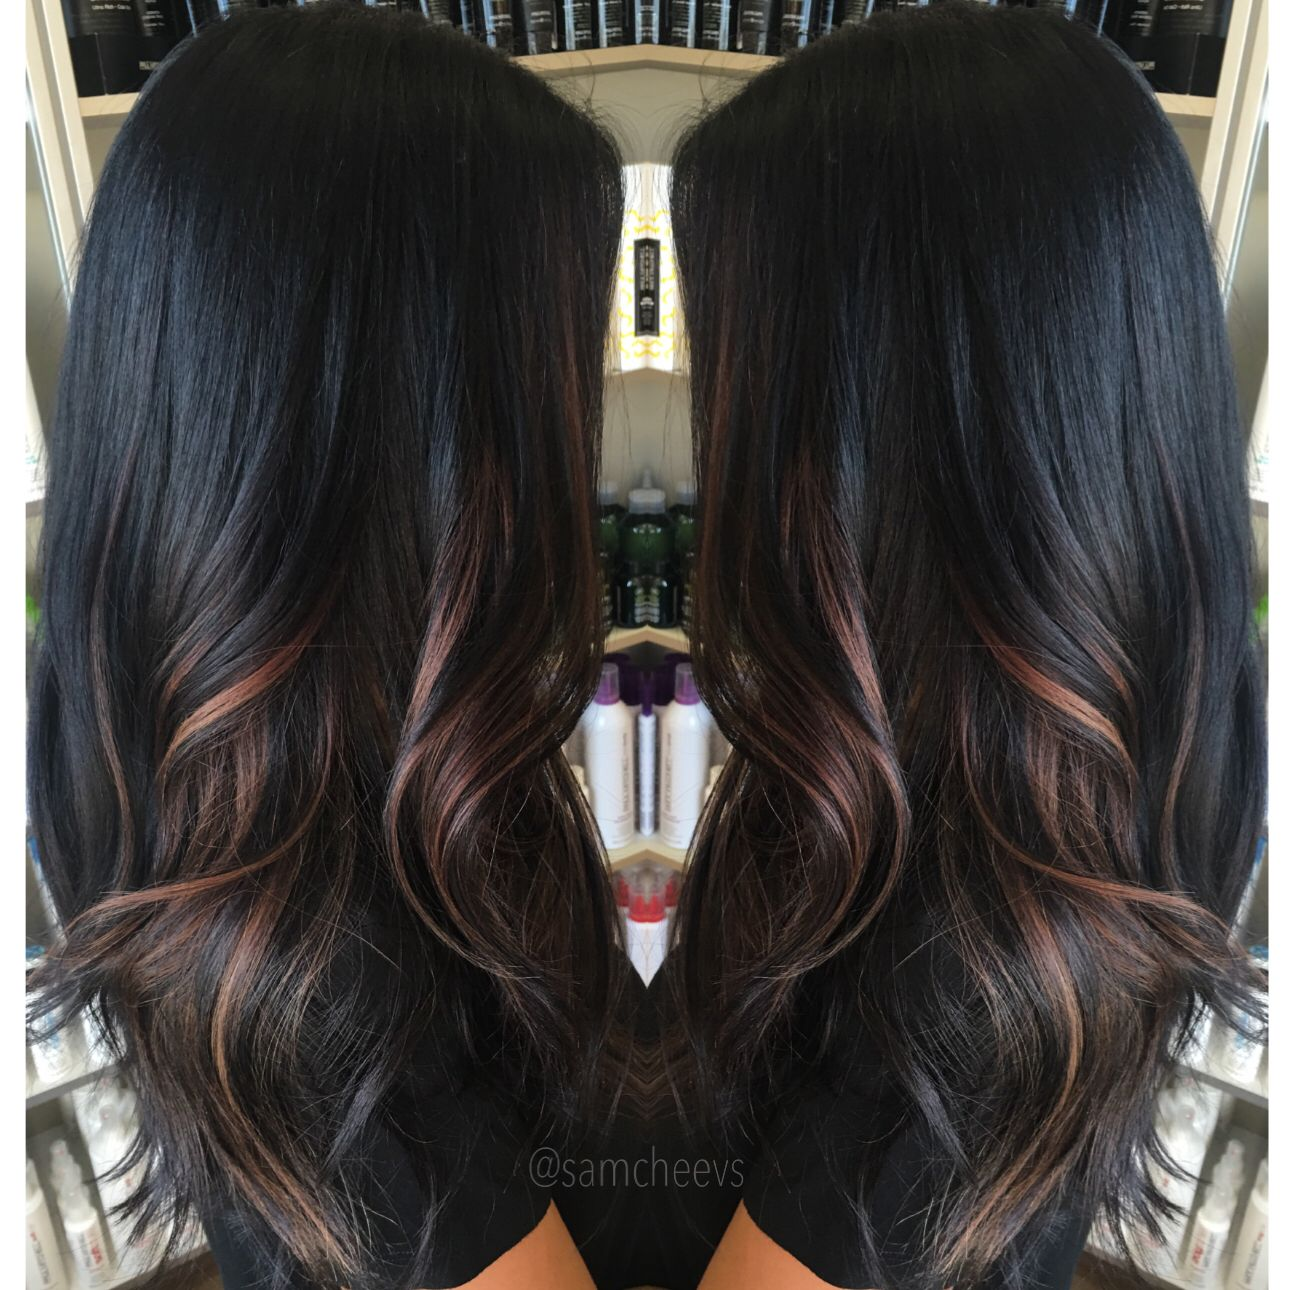 Ombre For Dark Hair Highlights For Black Hair Dark Hair With Highlights Dark Ombre Hair Balayage Hair Dark